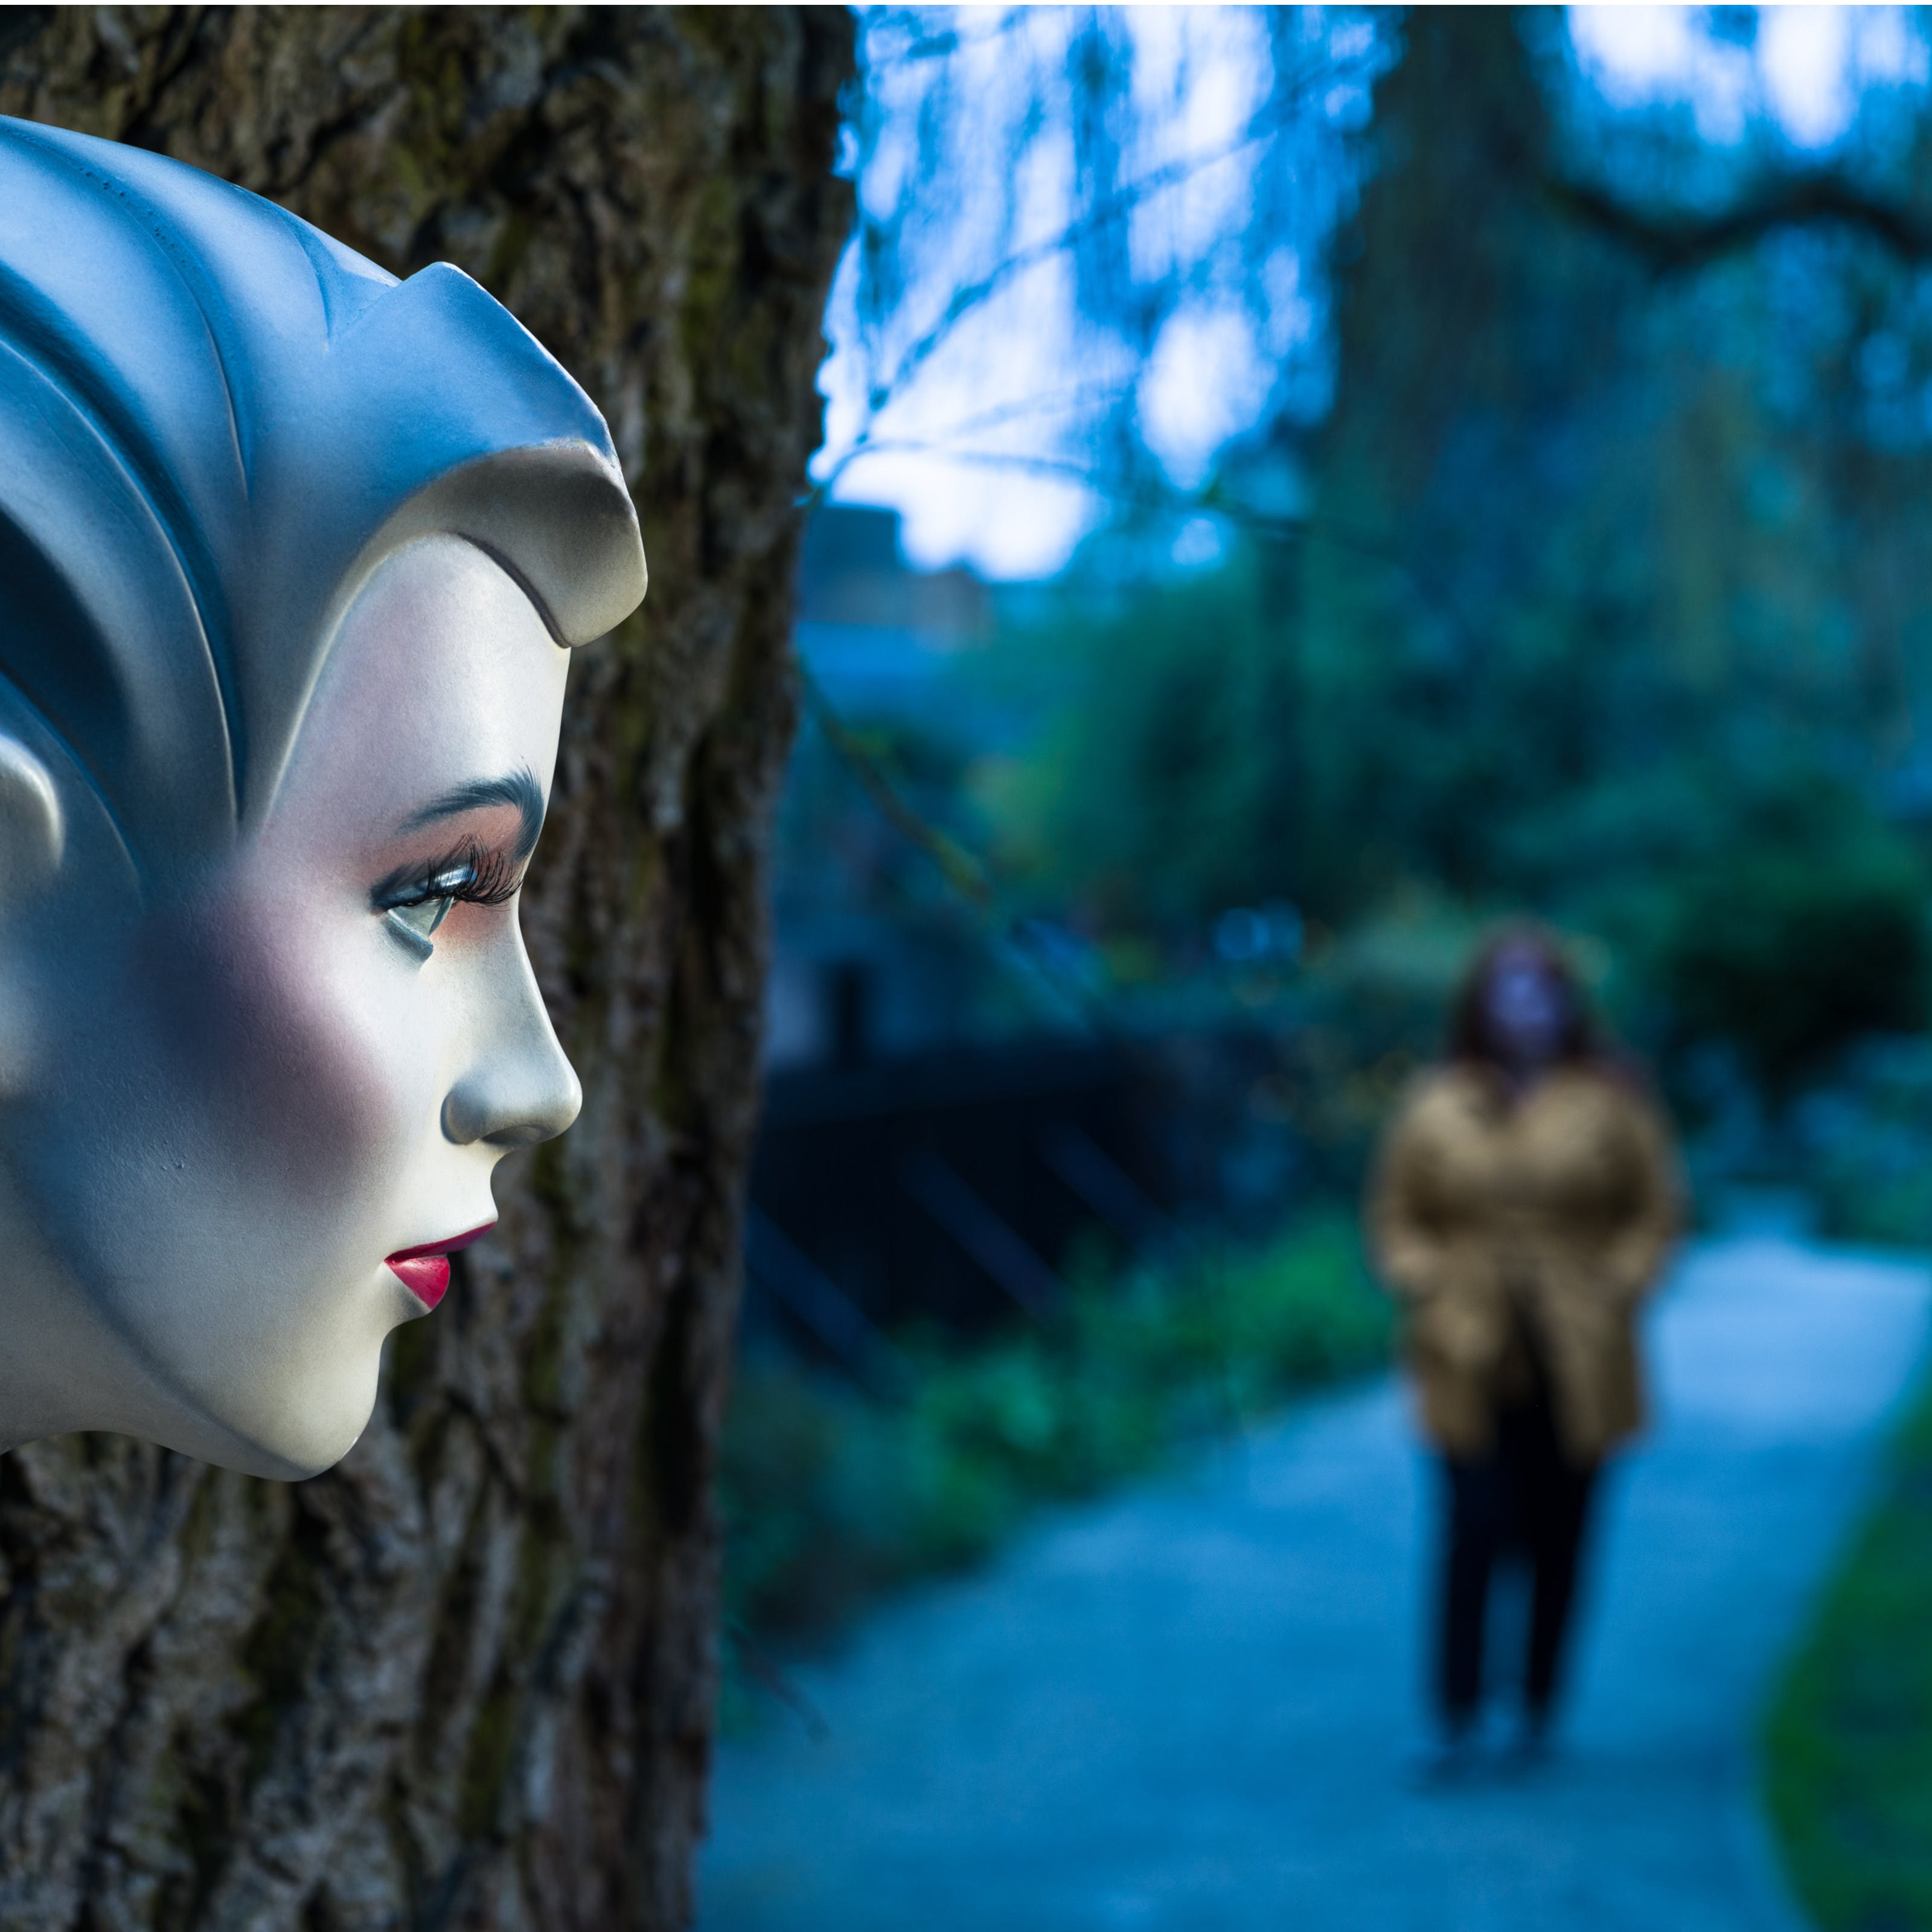 Photograph of the profile of a mannequin's head in front of a tree trunk. In the background an out-of-focus young woman approaches.